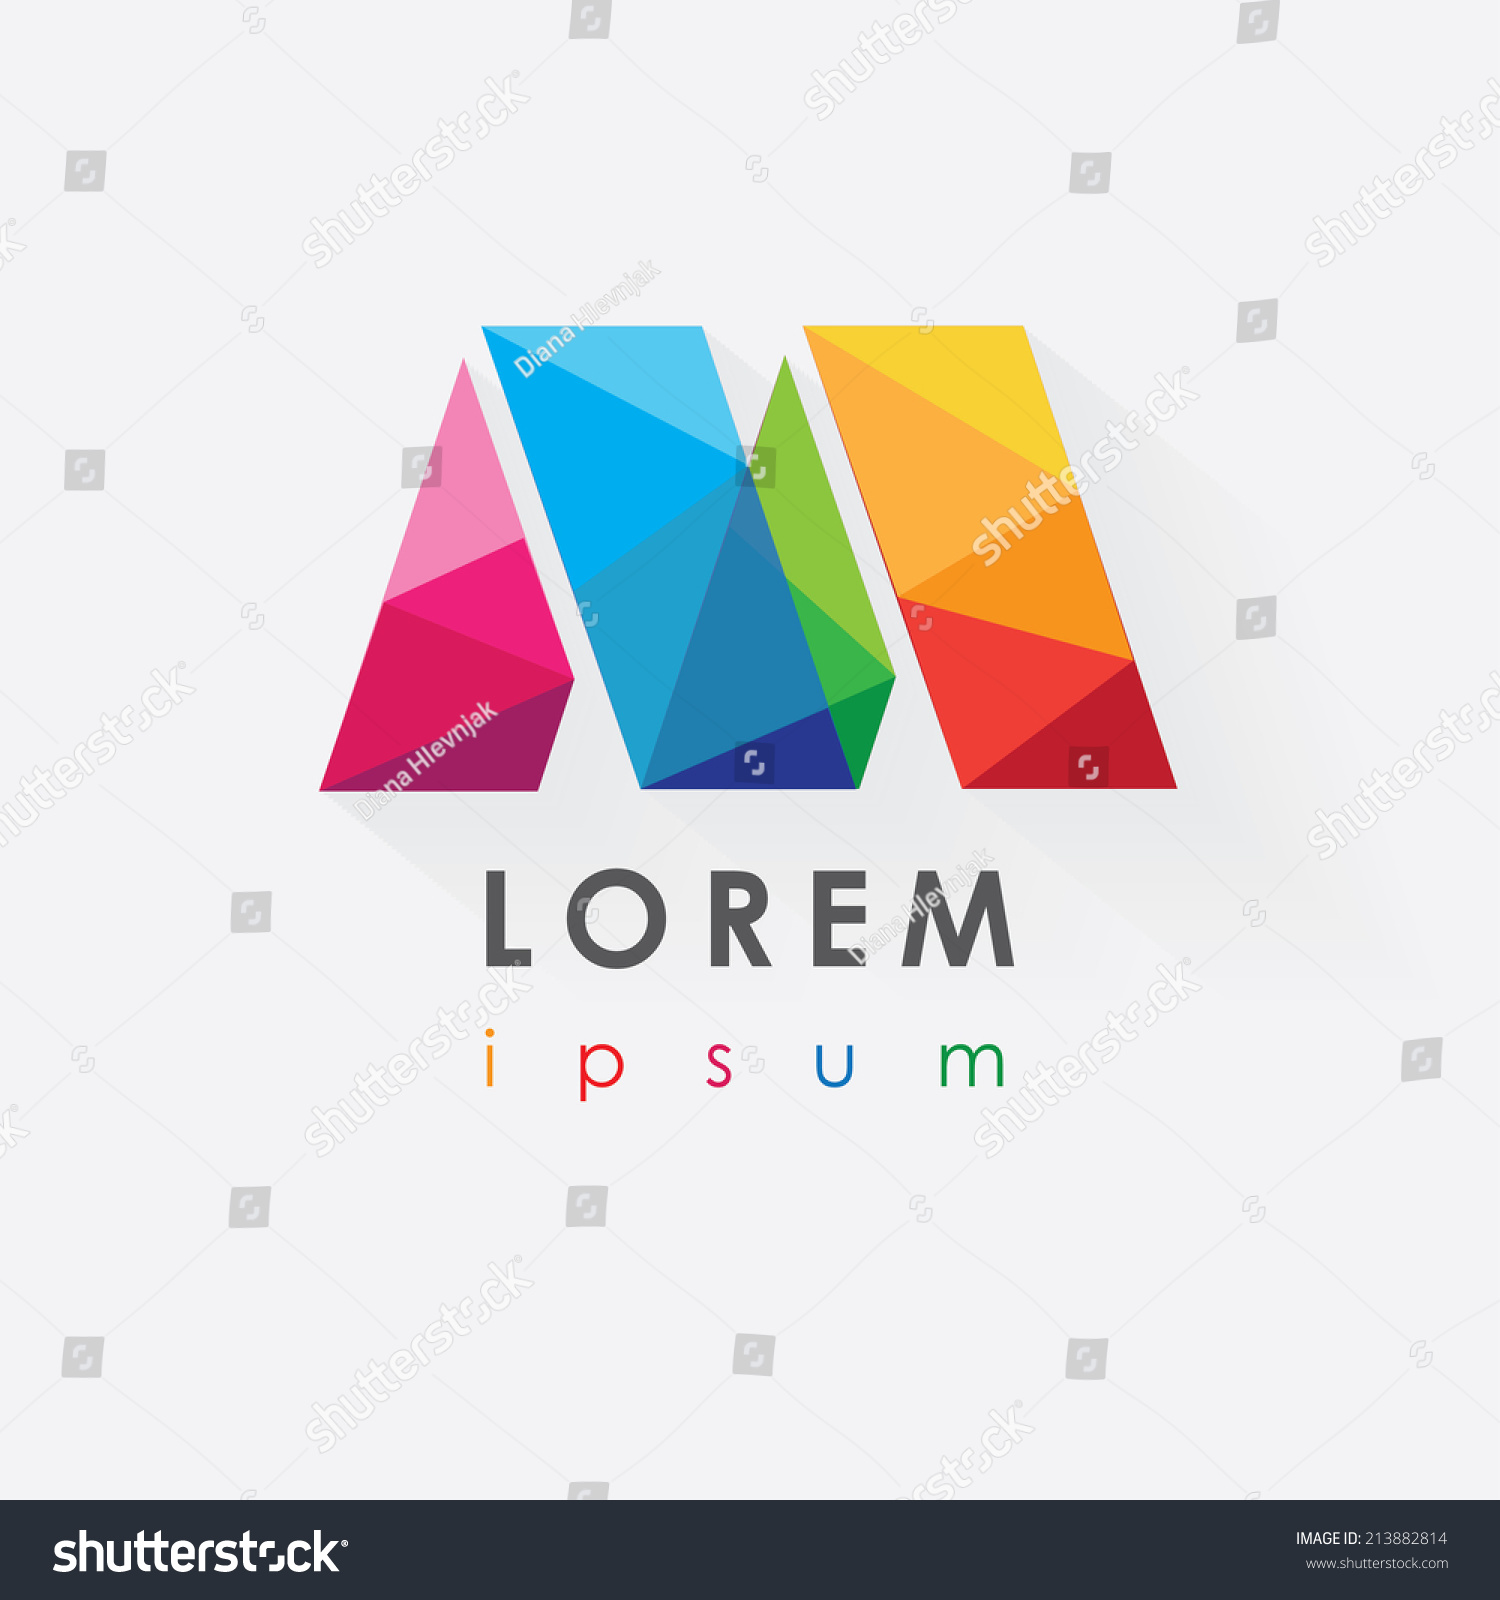 Colorful letter m logo design business stock vector for Designing company